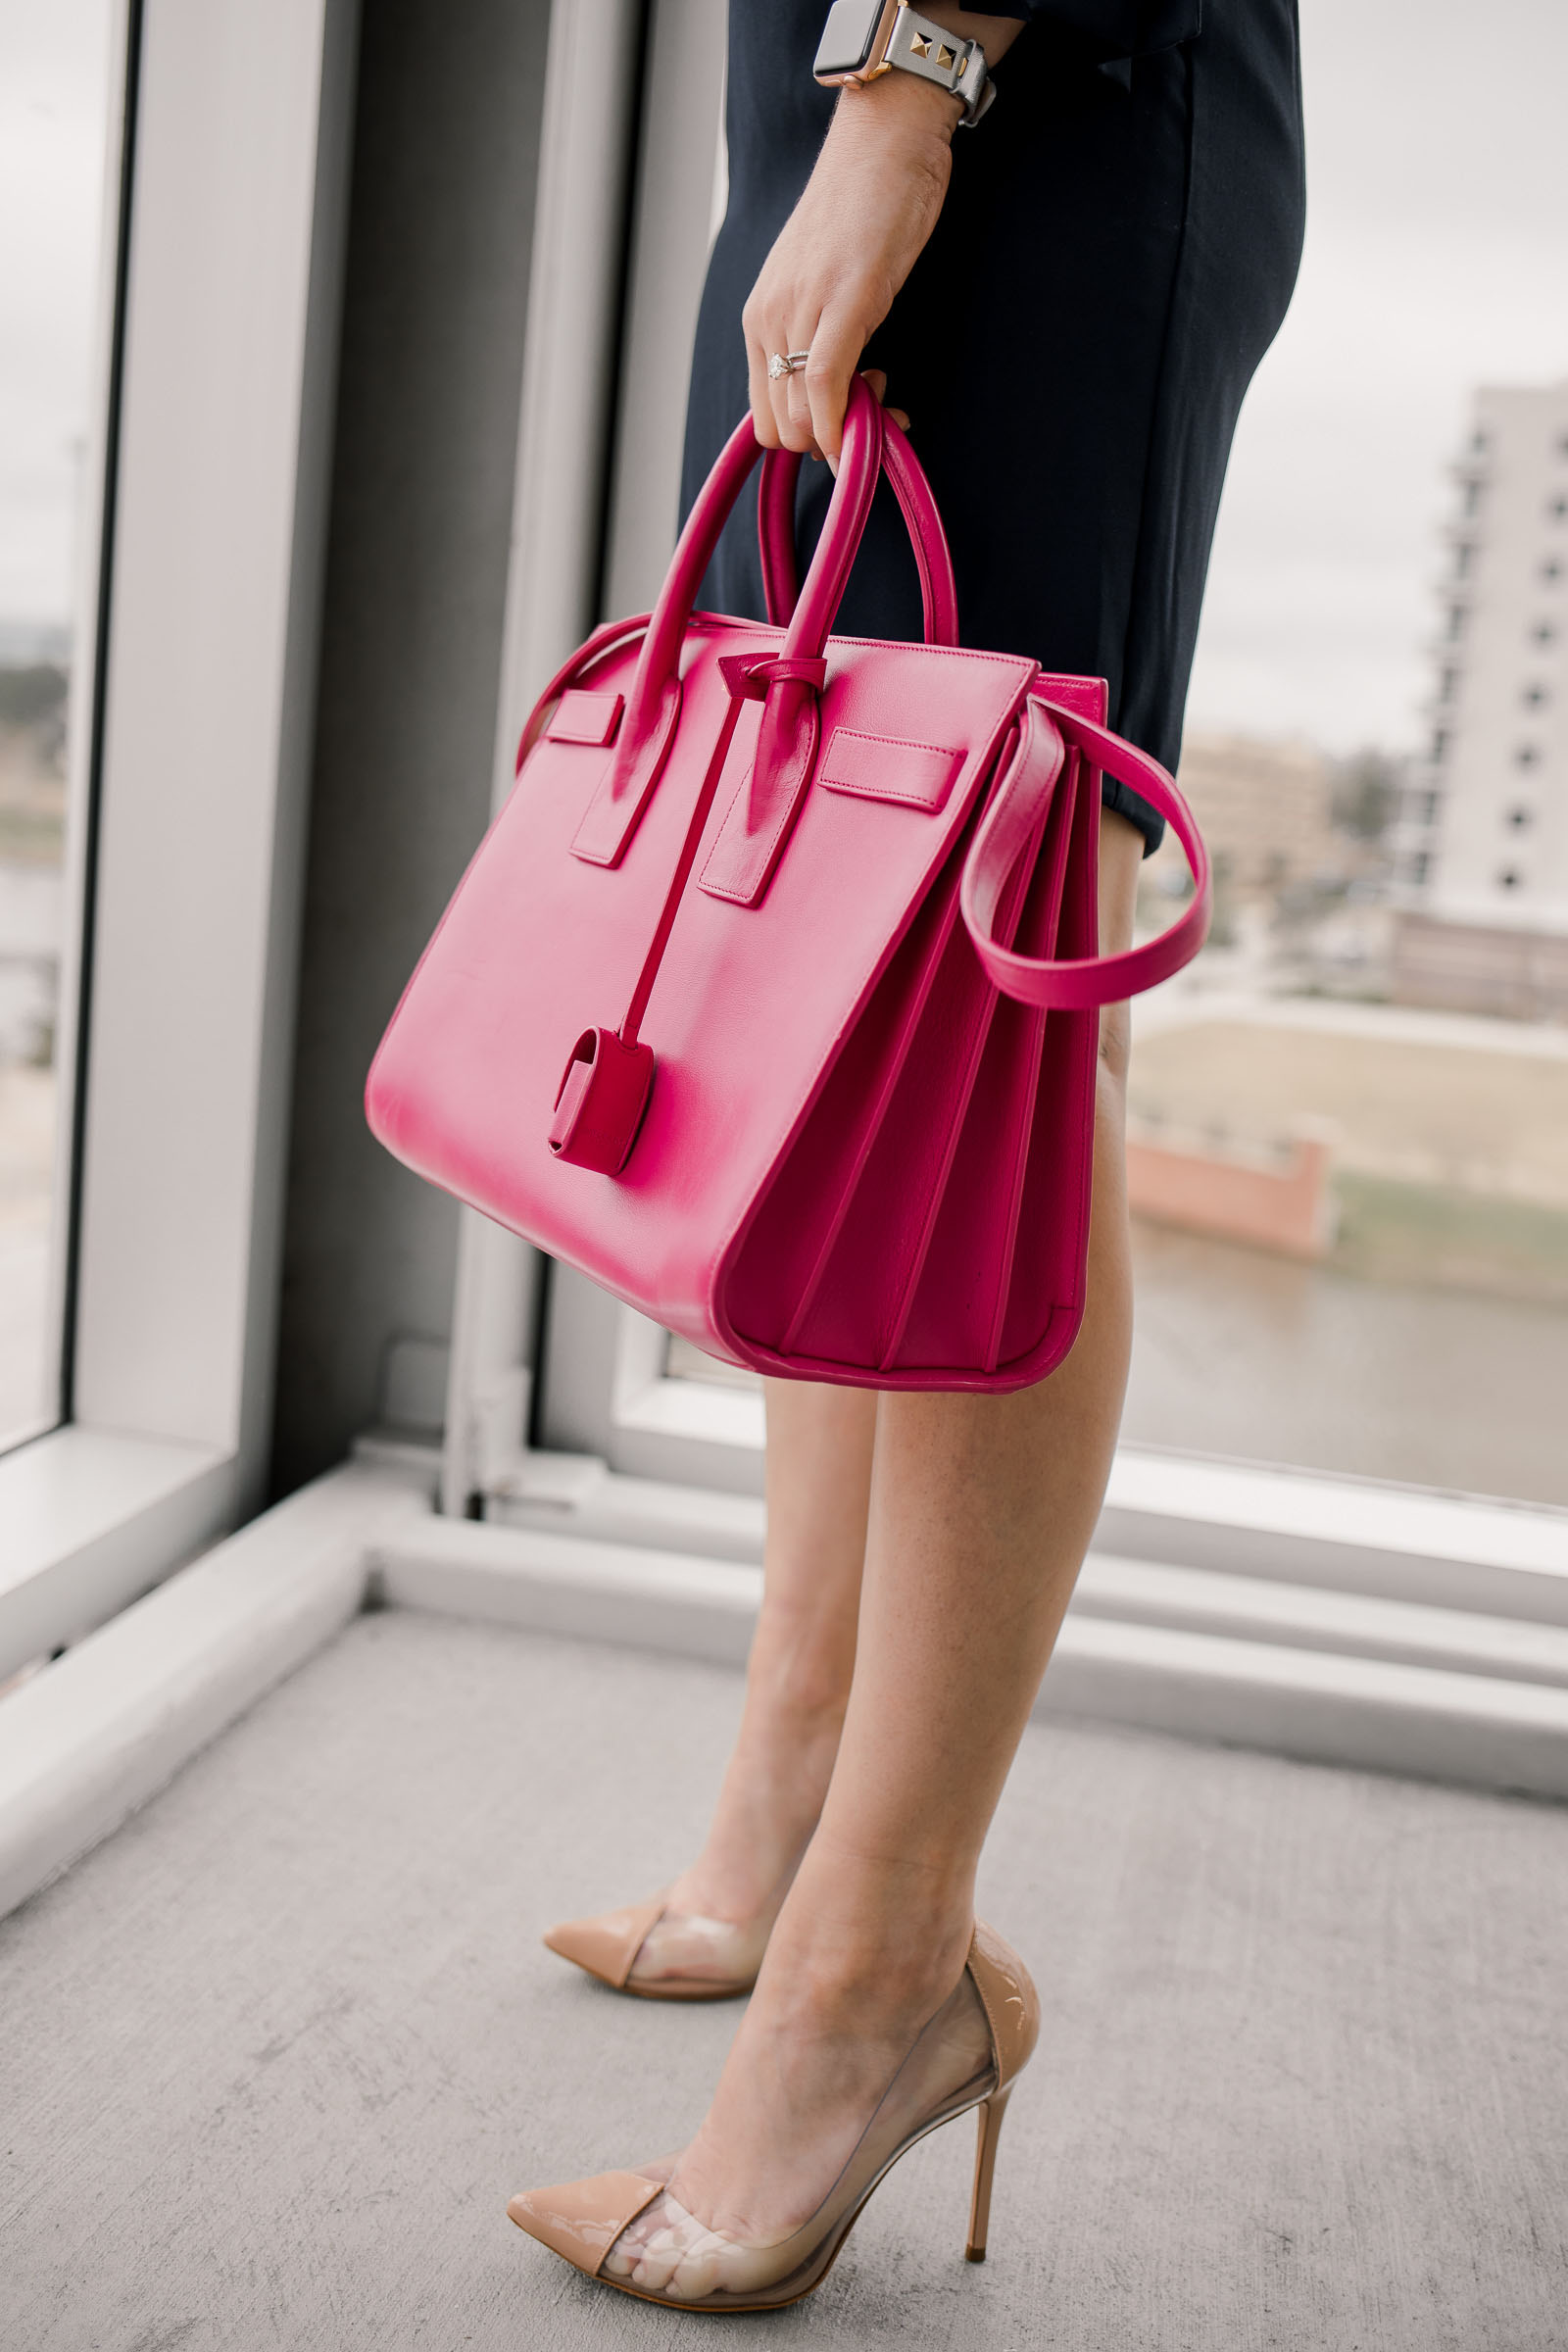 Houston fashion blogger Uptown with Elly Brown wears nude clear Schutz shoes with a YSL Sac De Jour bag